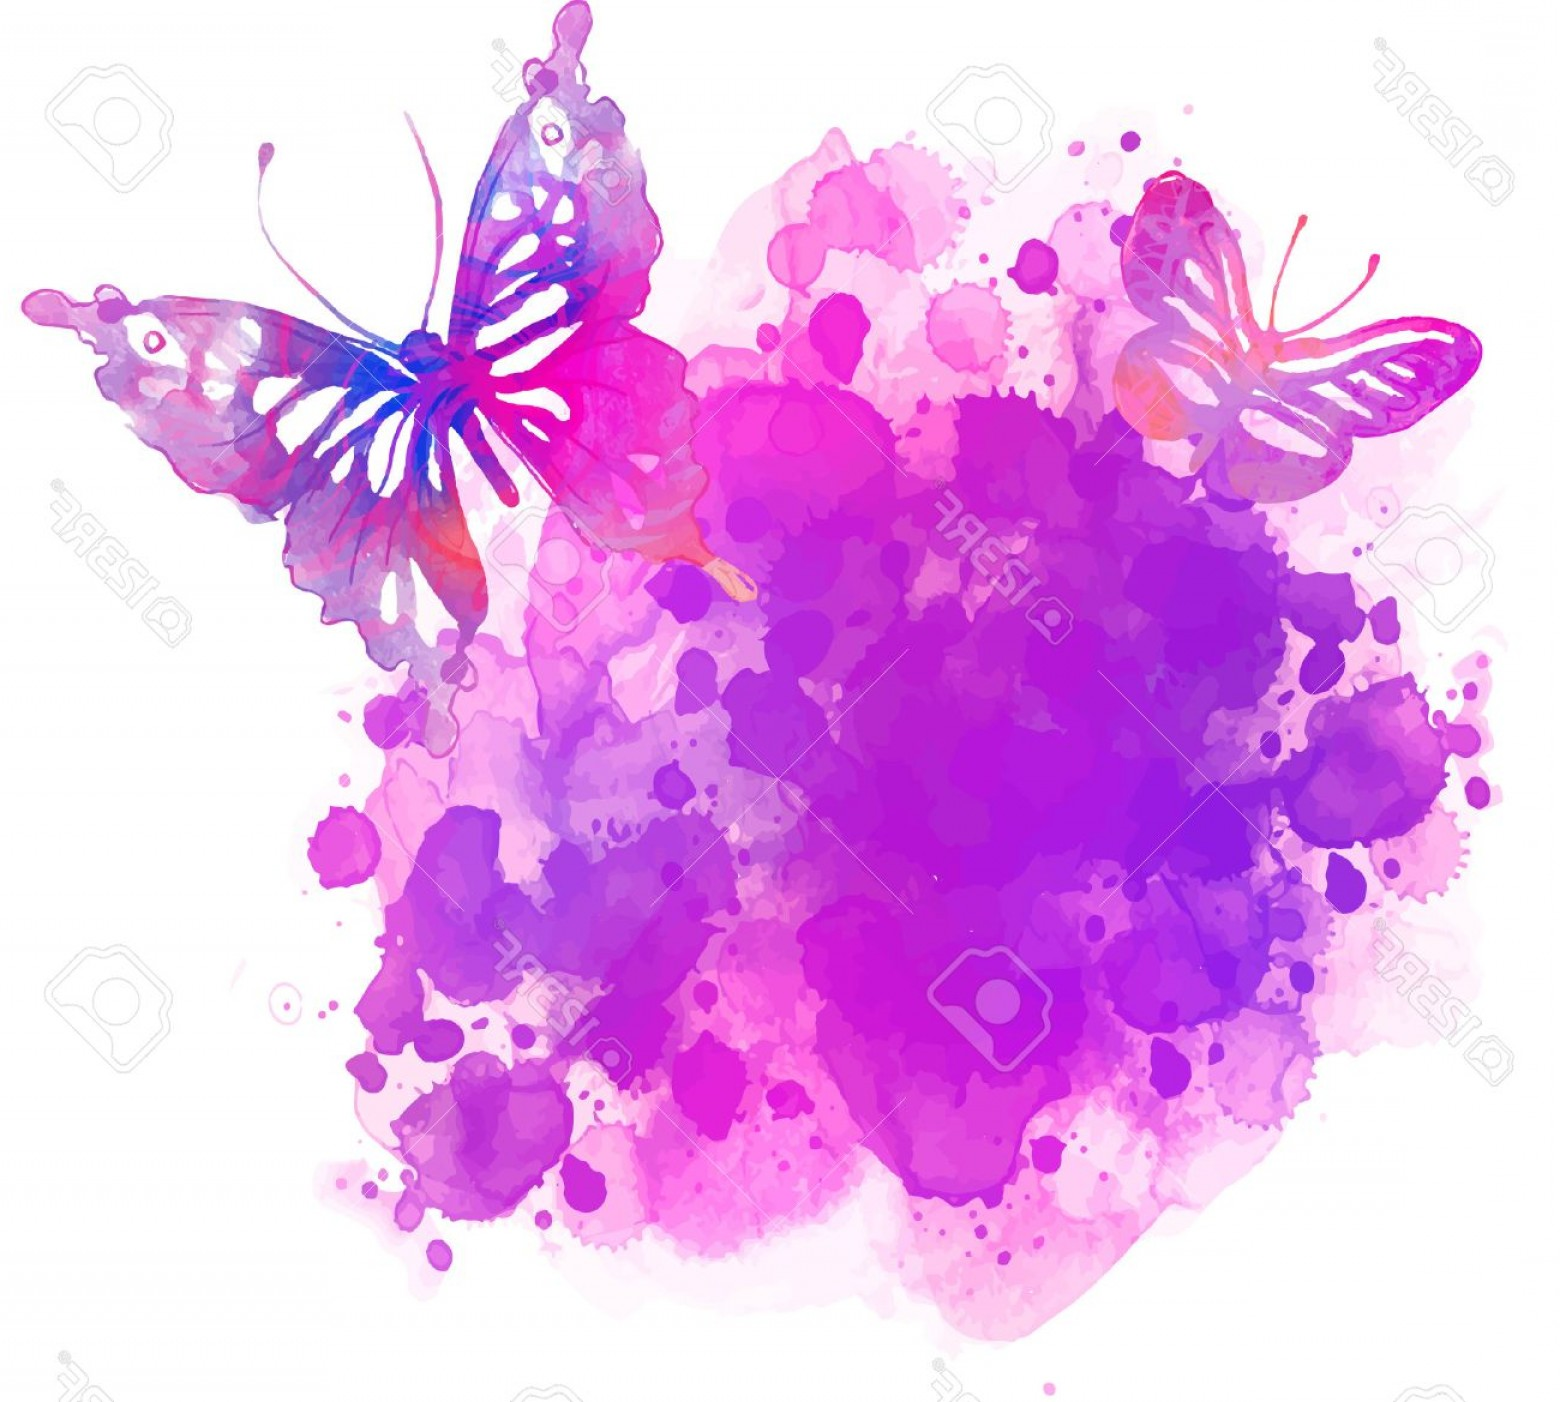 Butterly Vector: Photostock Vector Amazing Watercolor Background With Butterfly Vector Art Isolated On White